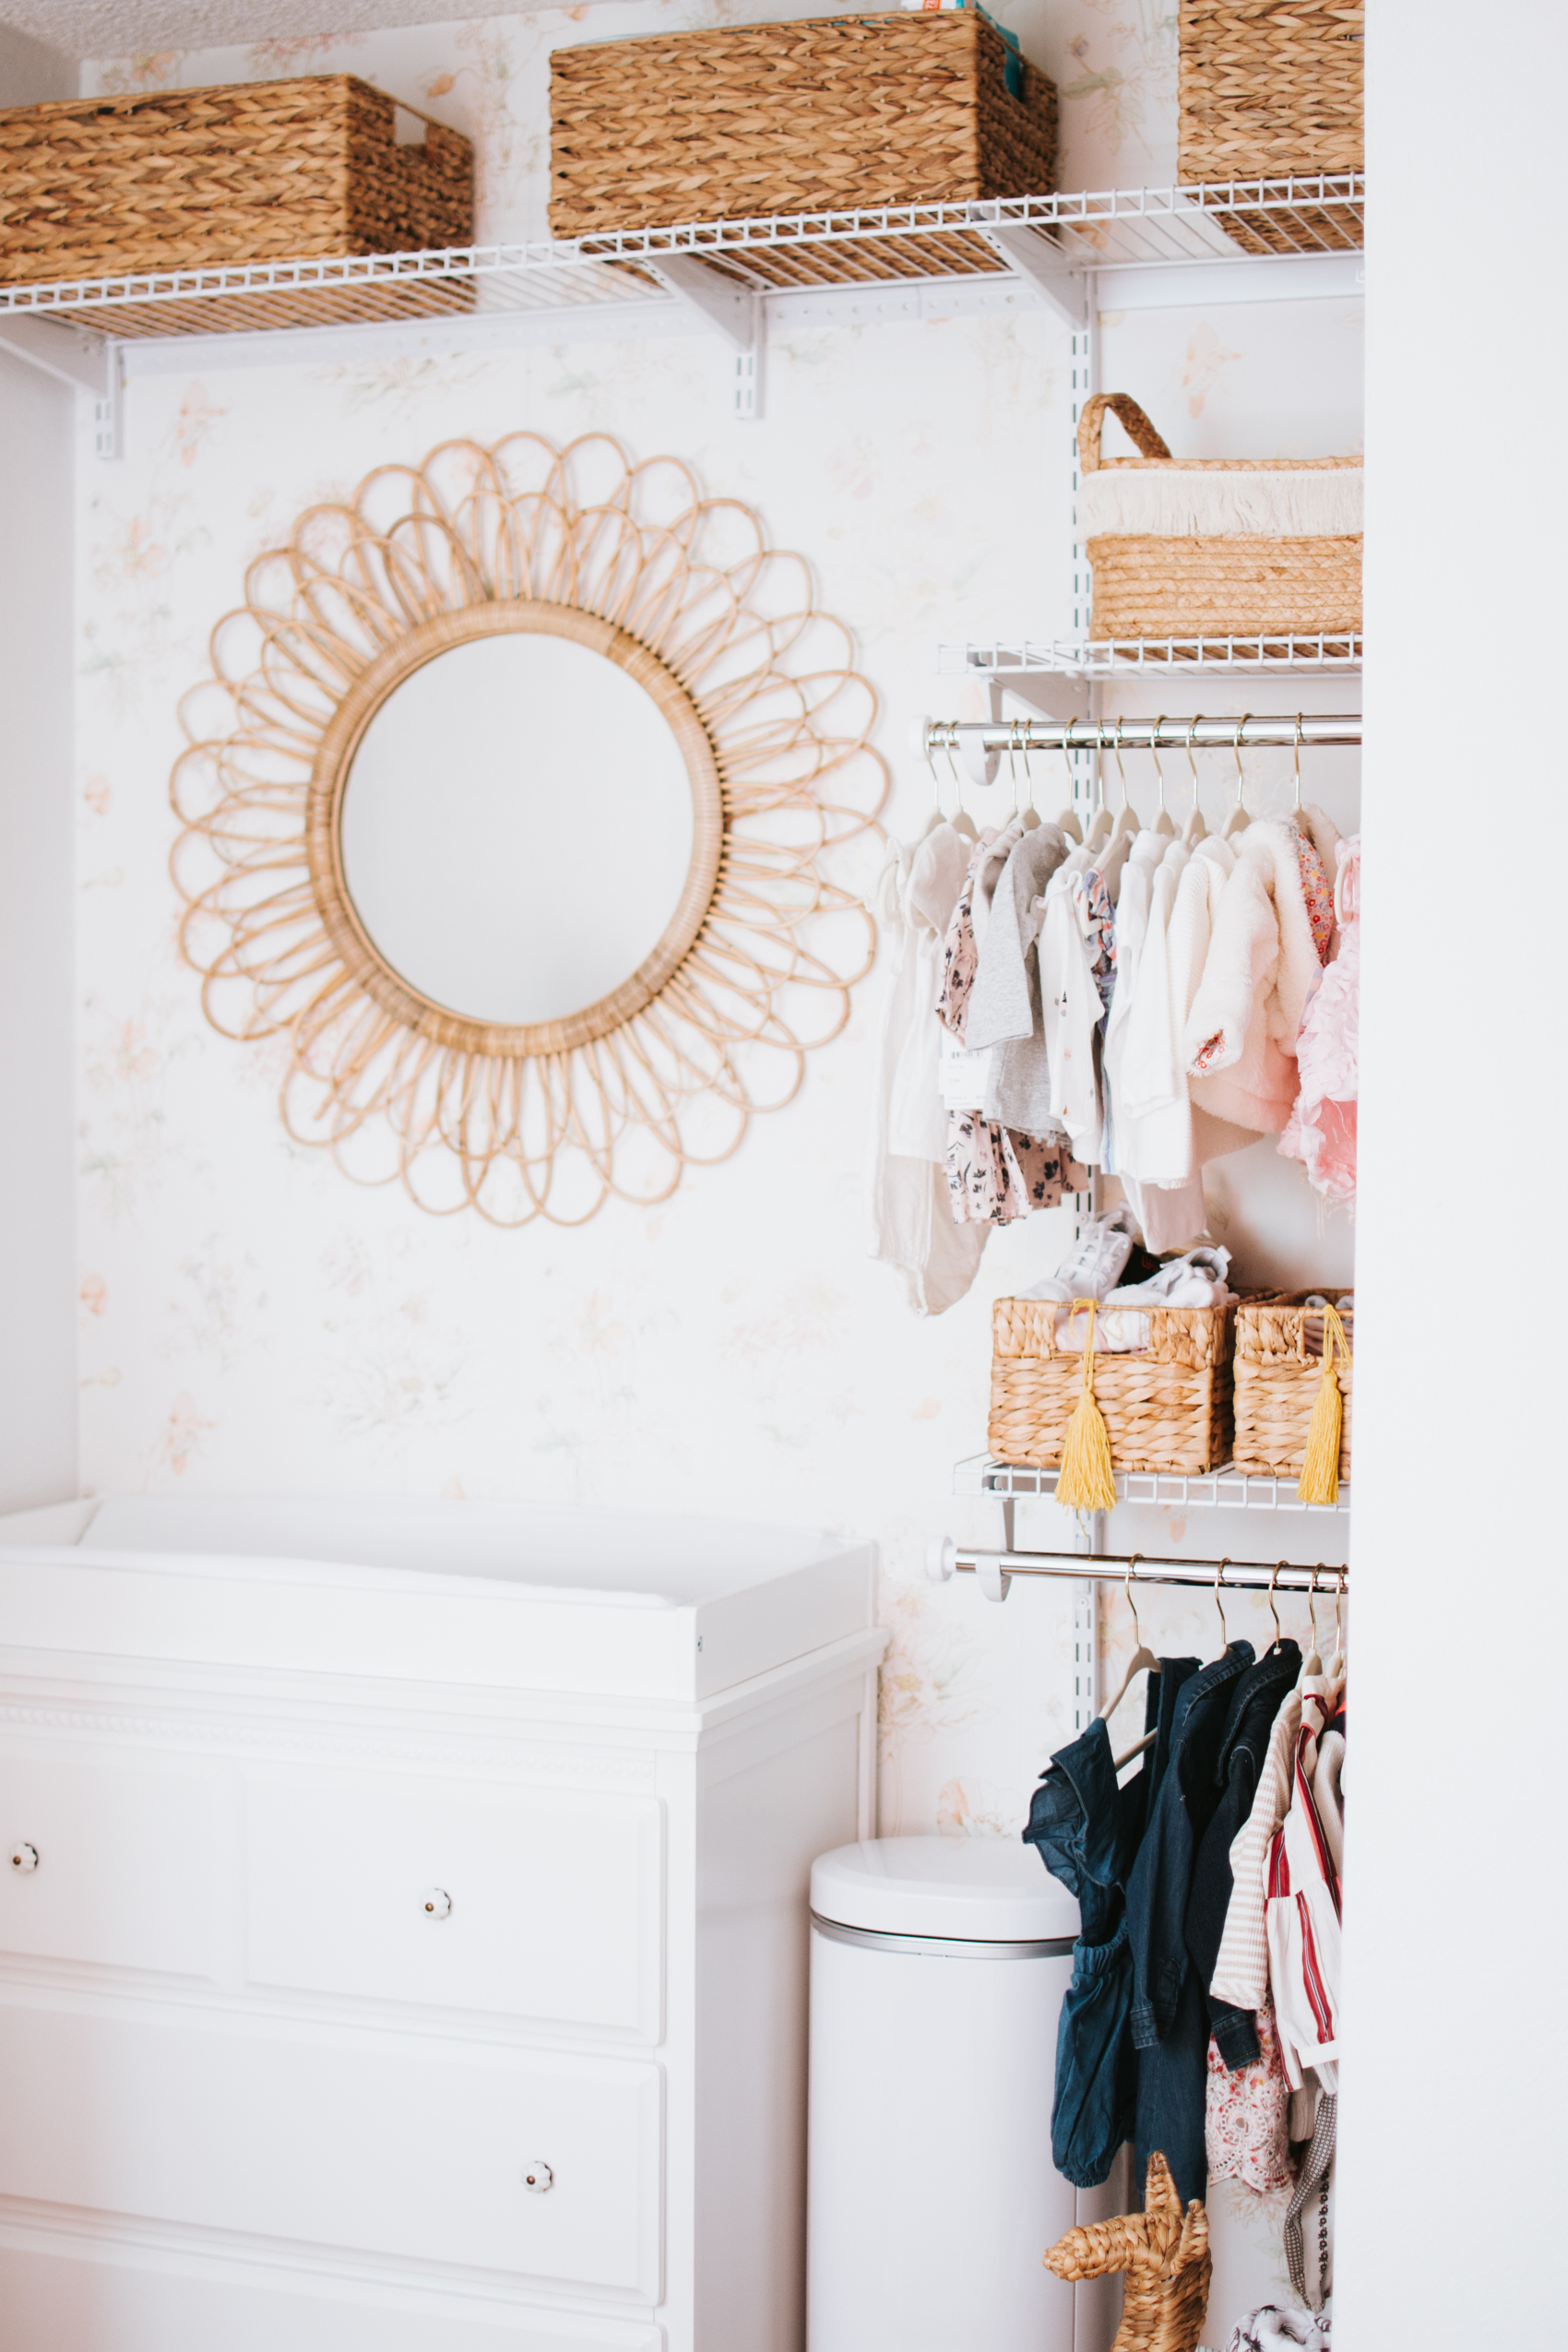 Nursery Closet Reveal with Rubbermaid via. The Pacific Standard | www.thepacificstandard.com #nurserytour #nurseryidea